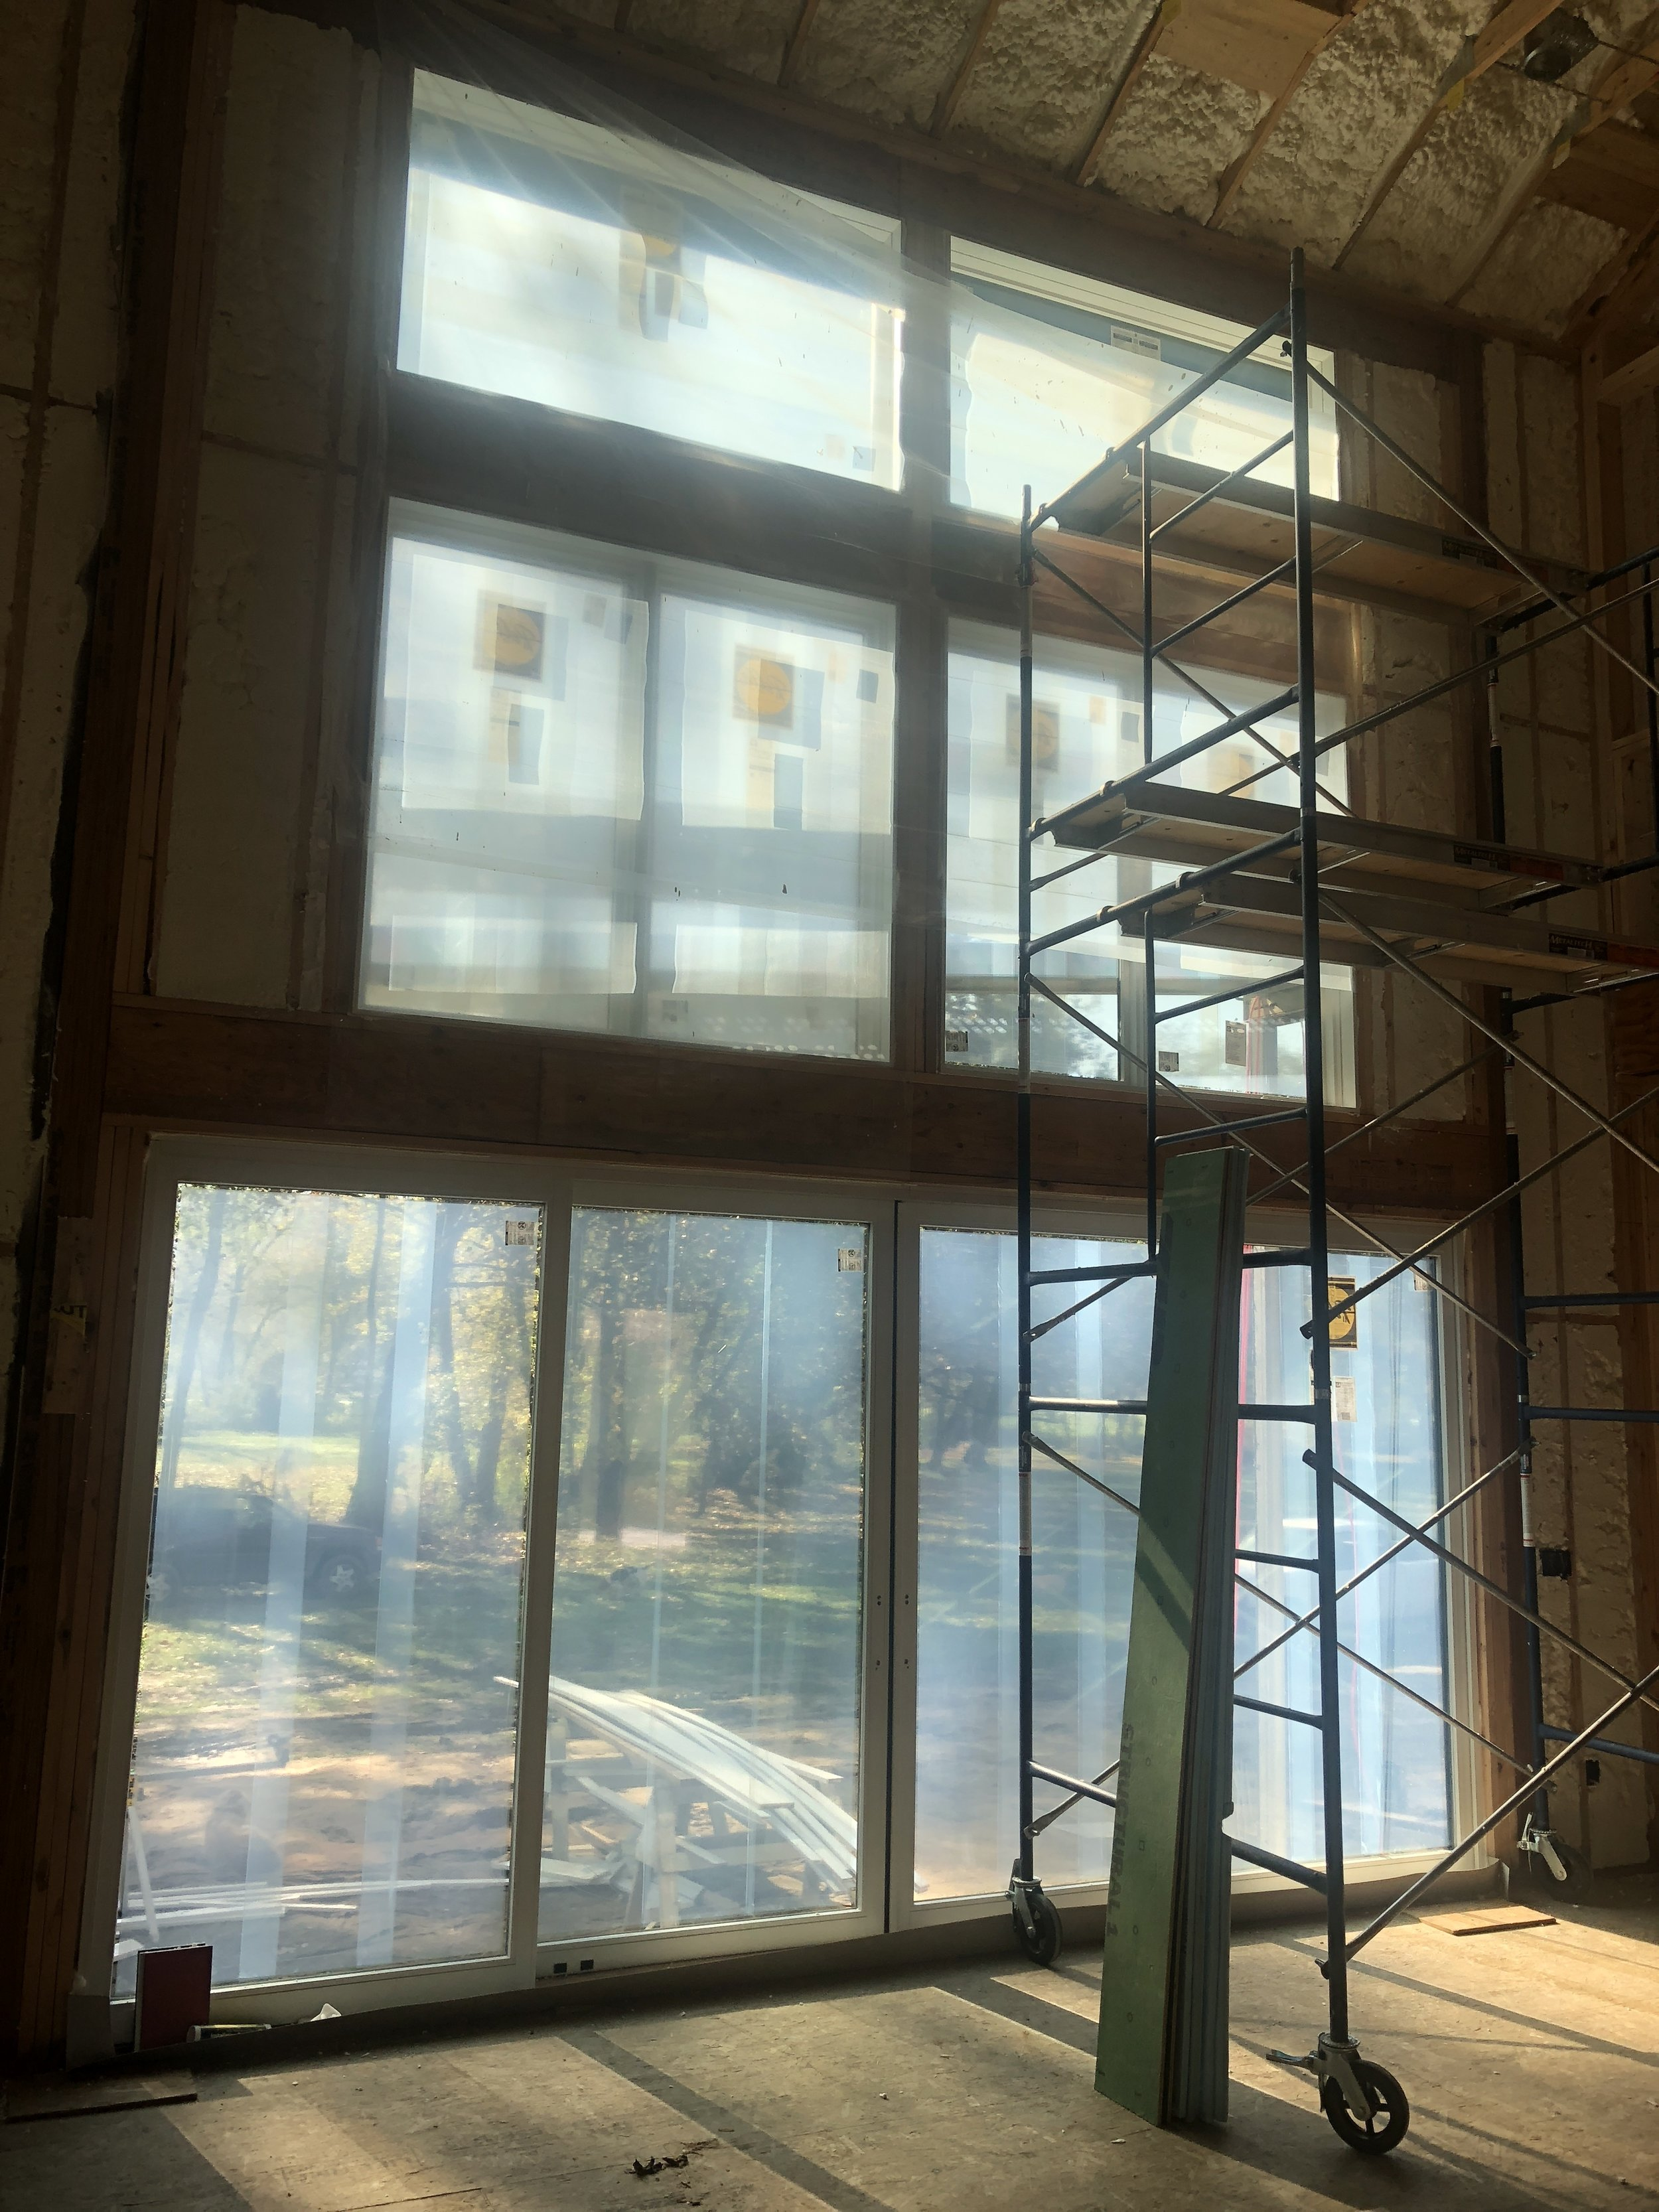 The rough-ins finished smoothly and we quickly added spray foam insulation throughout. This house is sealed up tight and the energy bills will reflect this!